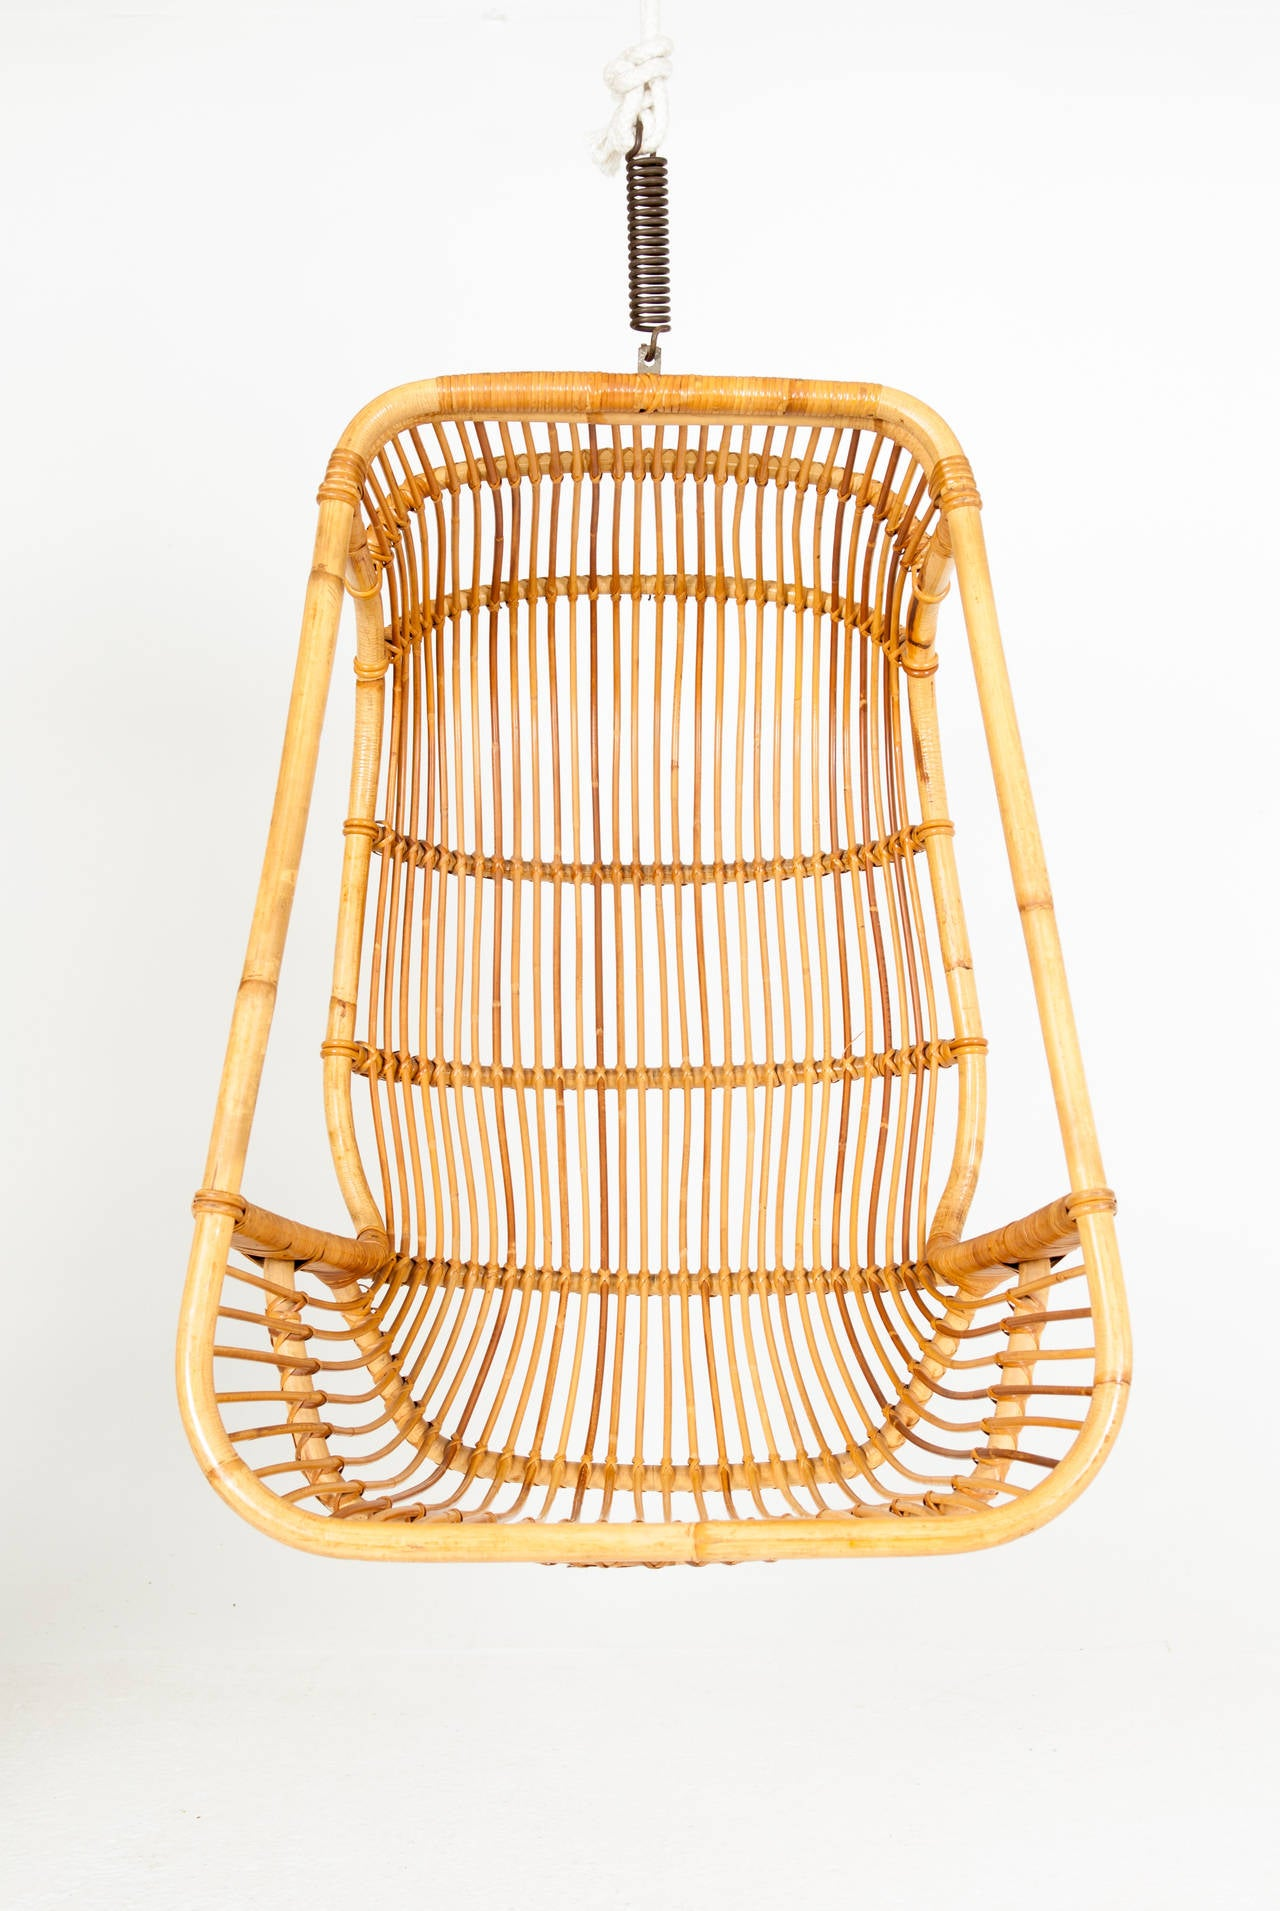 hanging chairs for sale swing chair harvey norman at 1stdibs